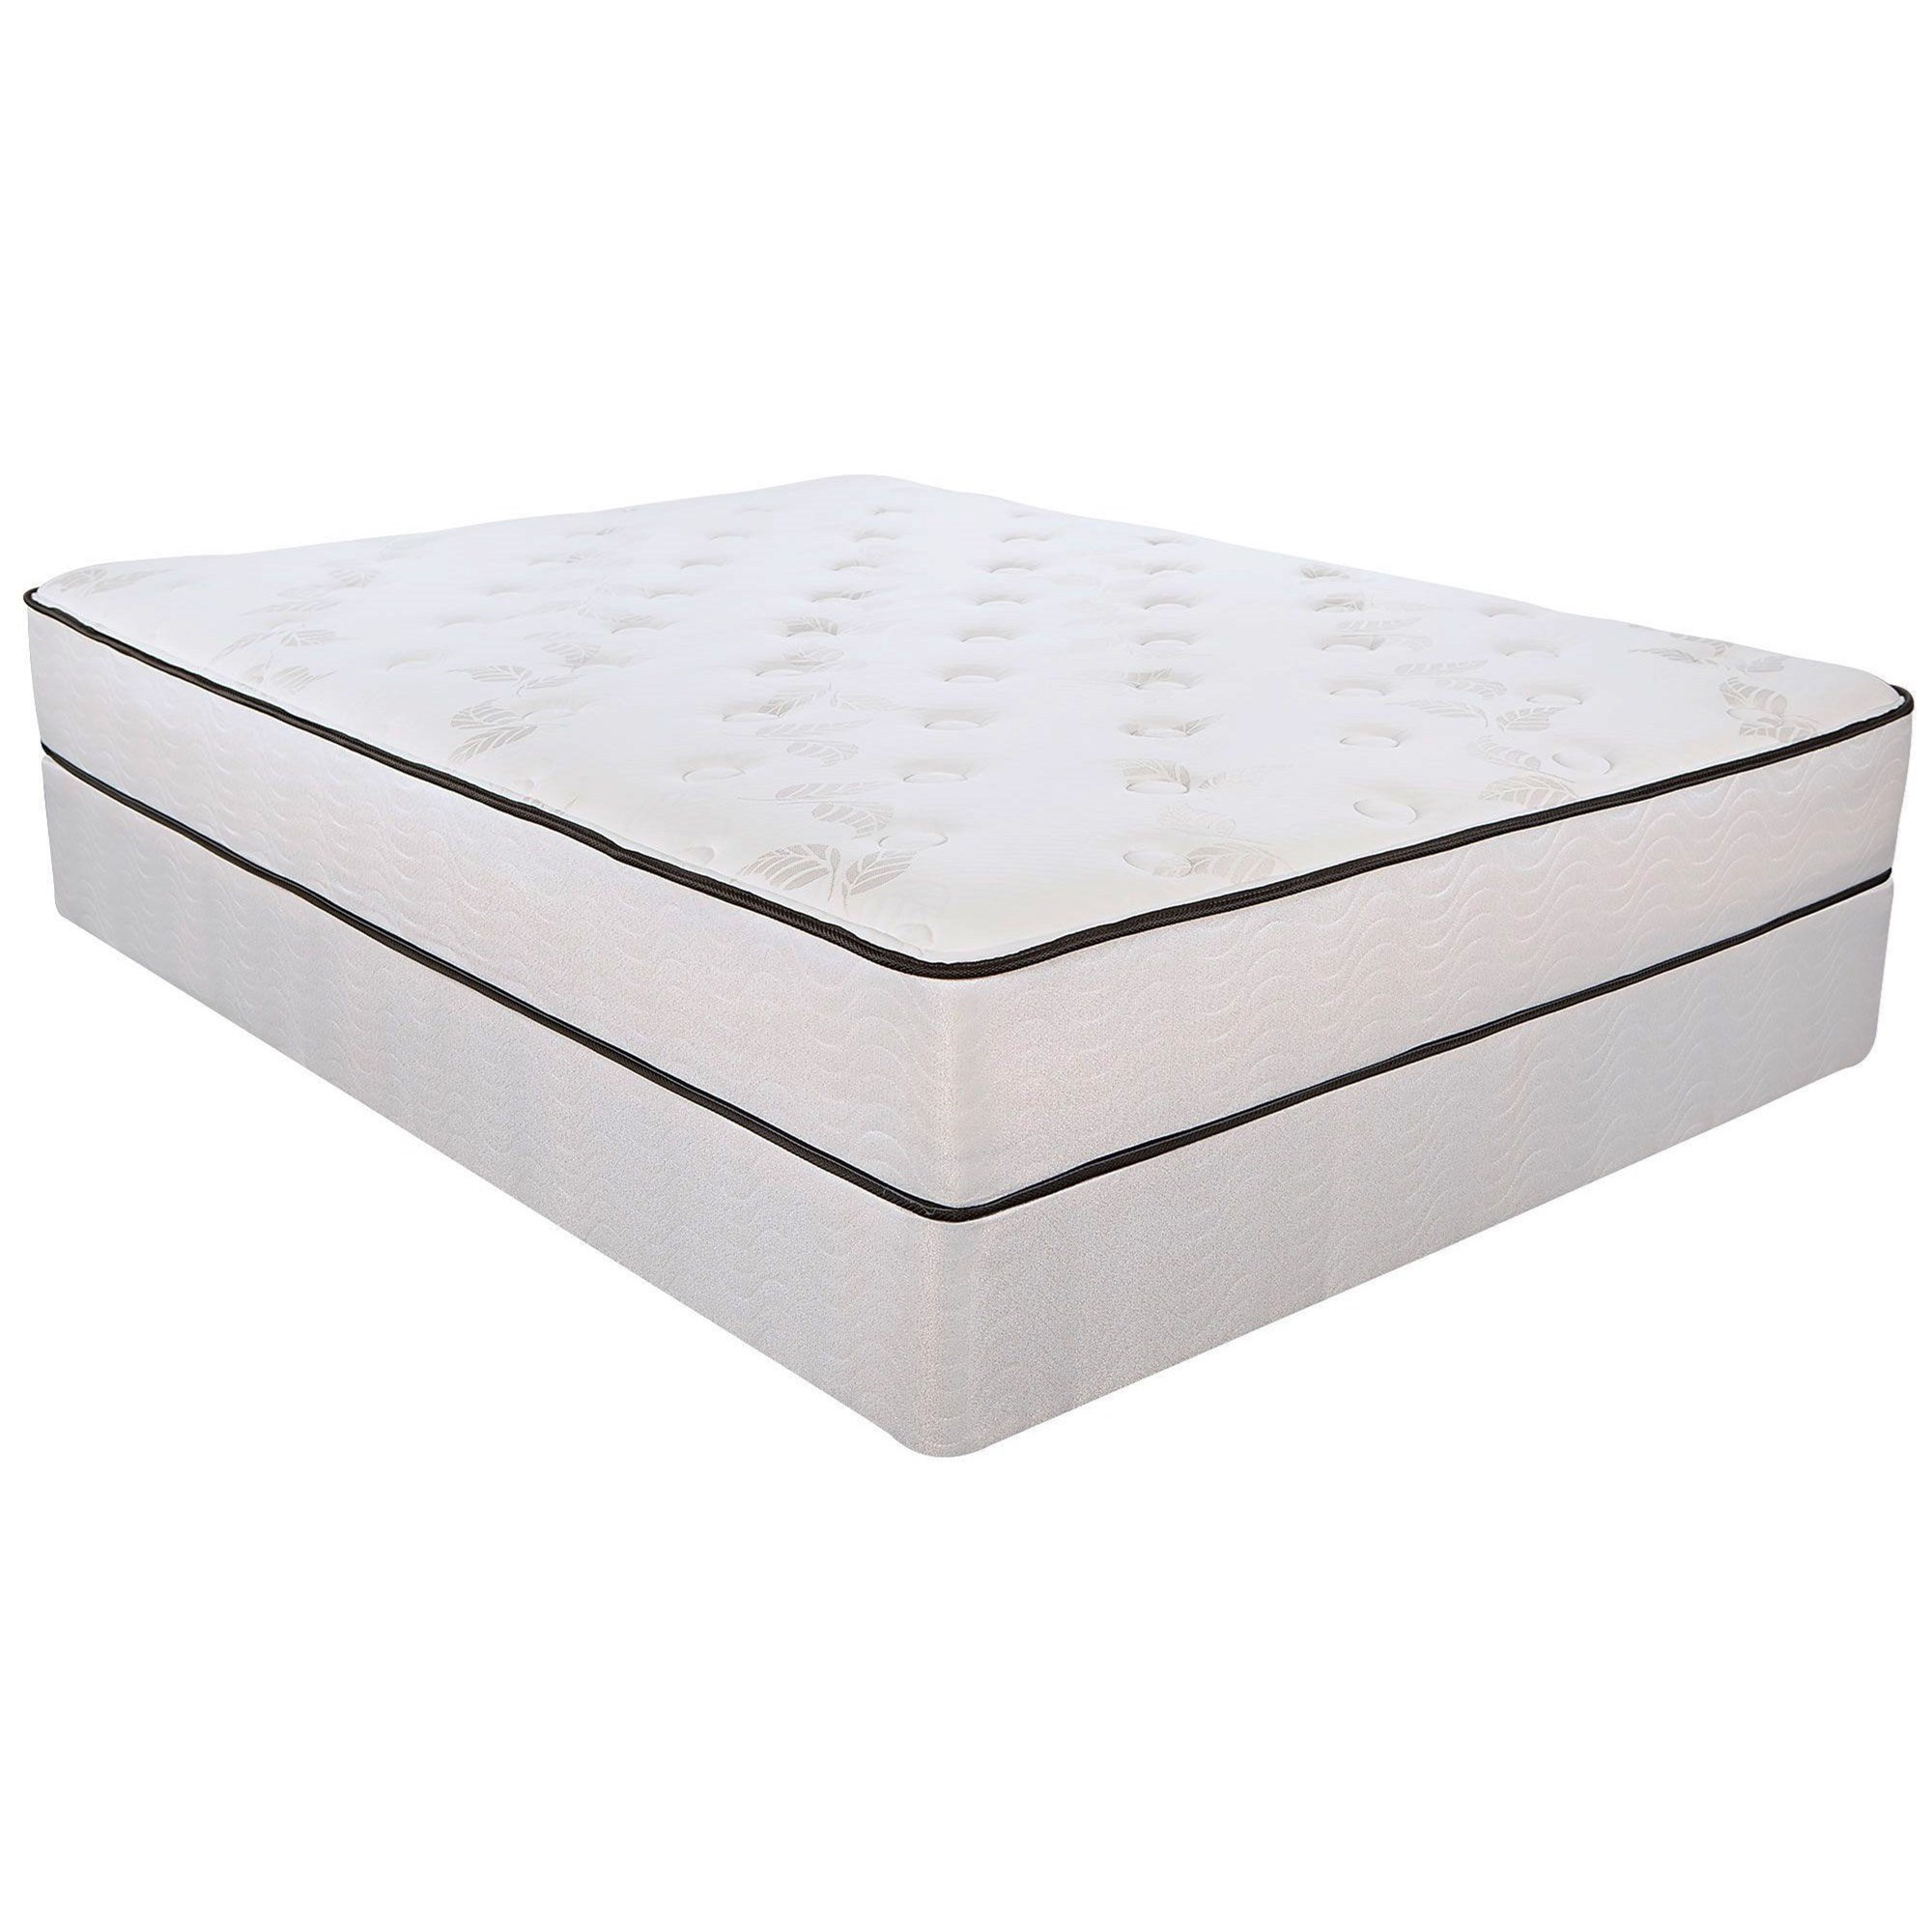 "5500 Plush Full 10.9"" Innerspring Mattress Set by Southerland Bedding Co. at Wilcox Furniture"